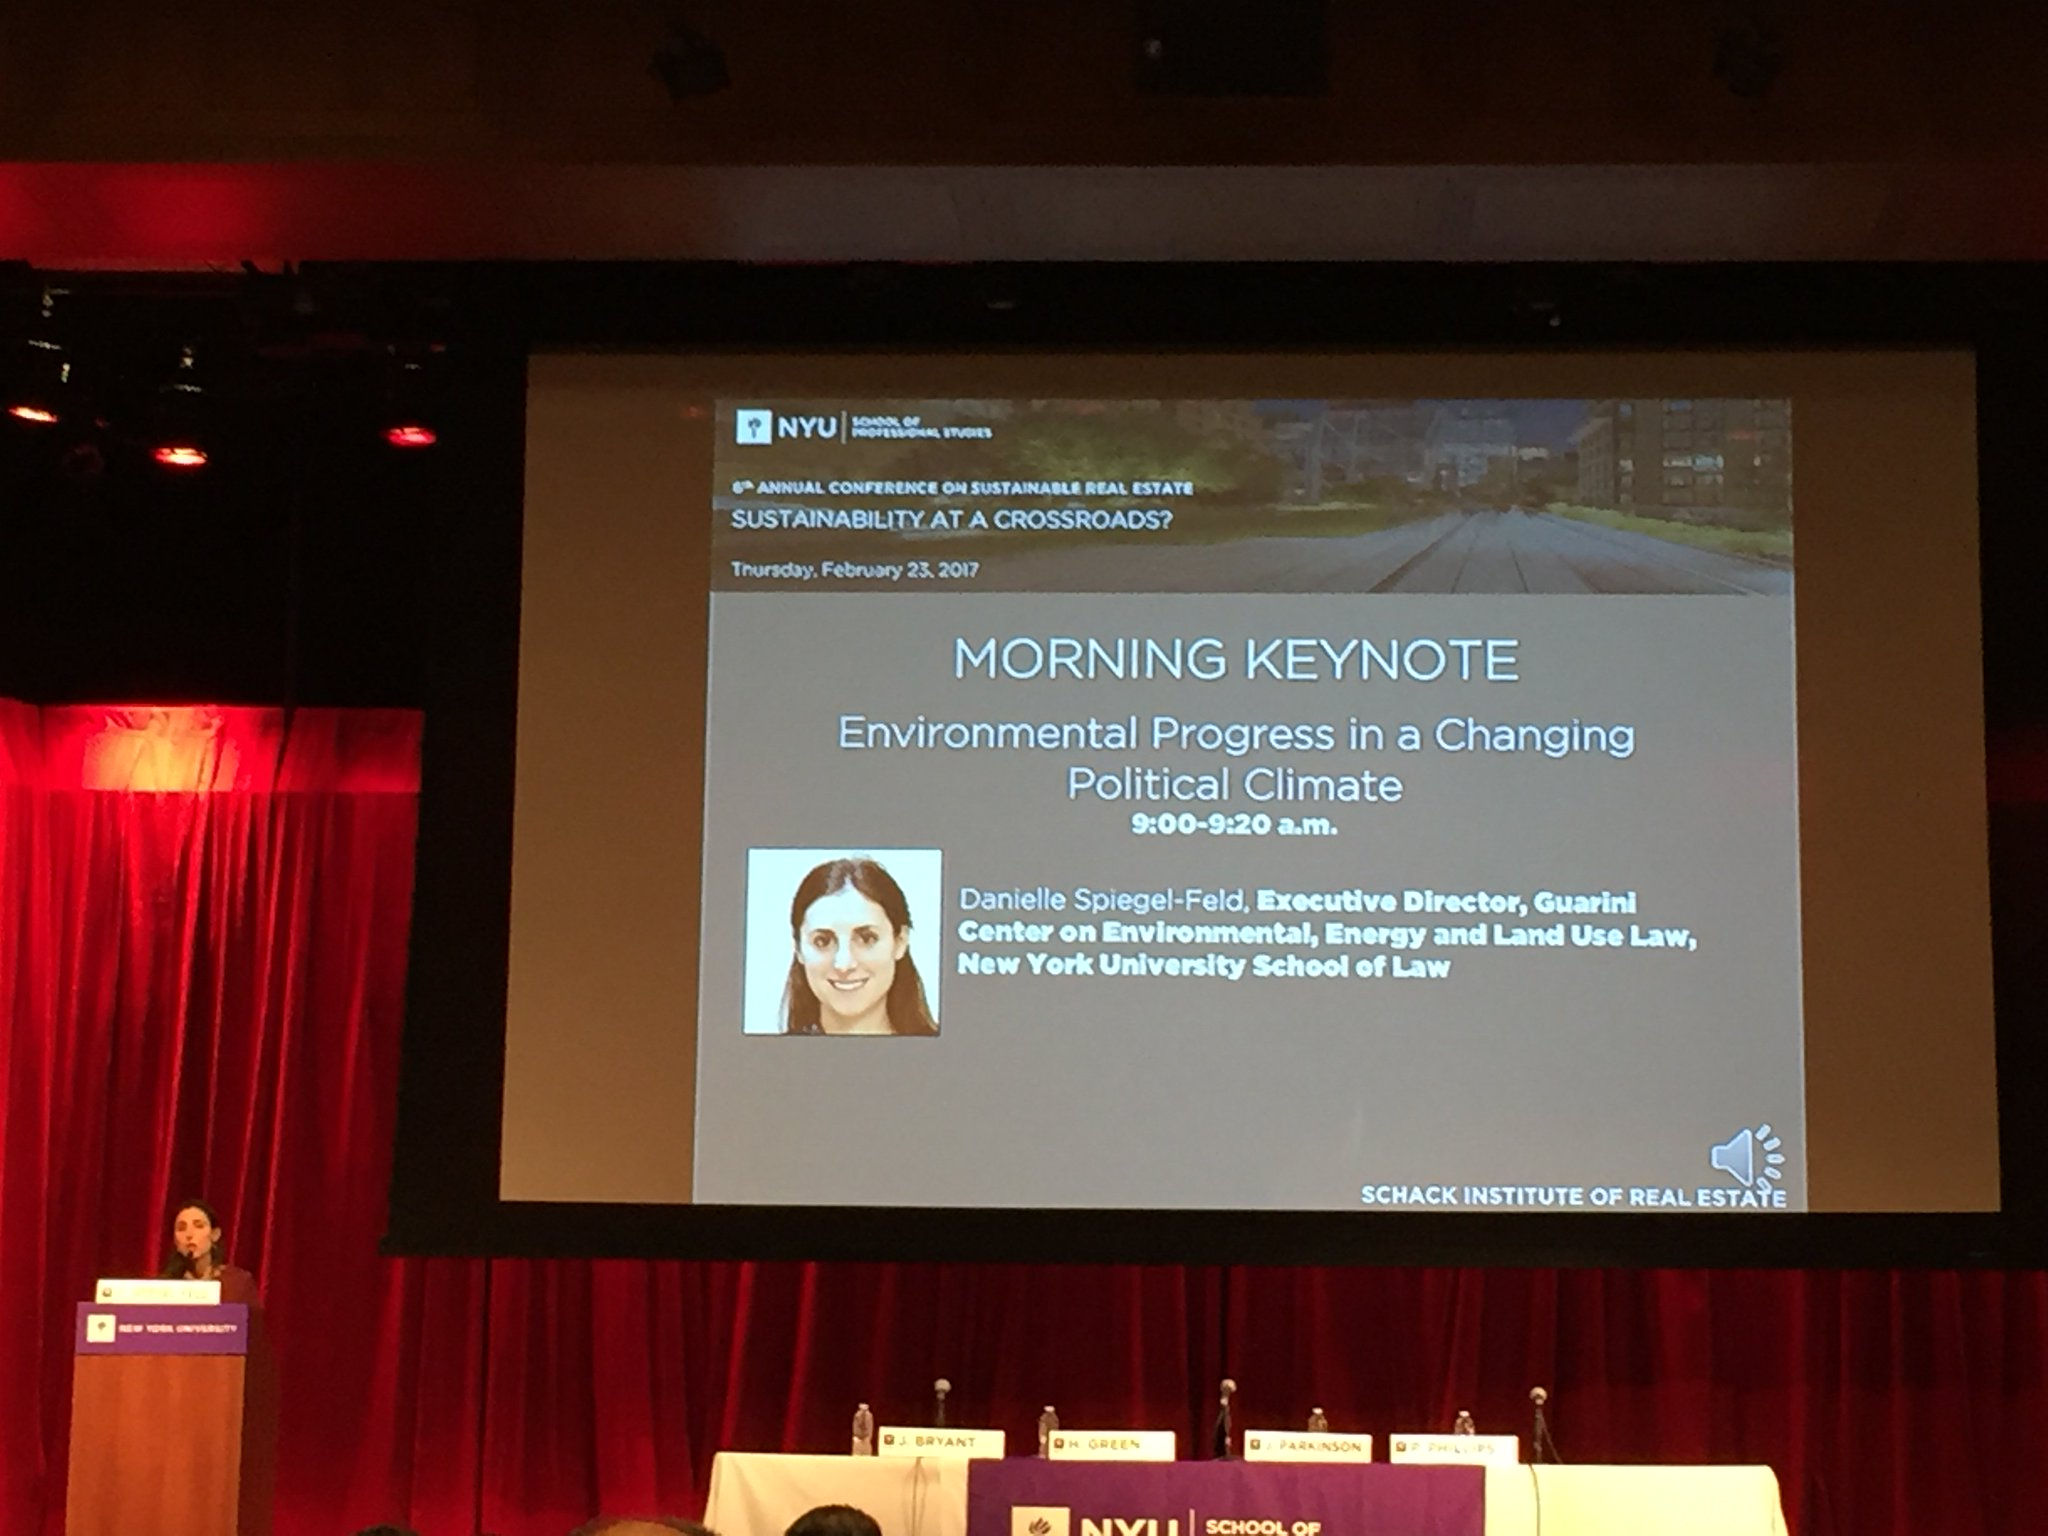 Kicking off #NYUSBE with a keynote speech from @nyulaw's Danielle Spiegel-Feld https://t.co/eMlrekNVeq